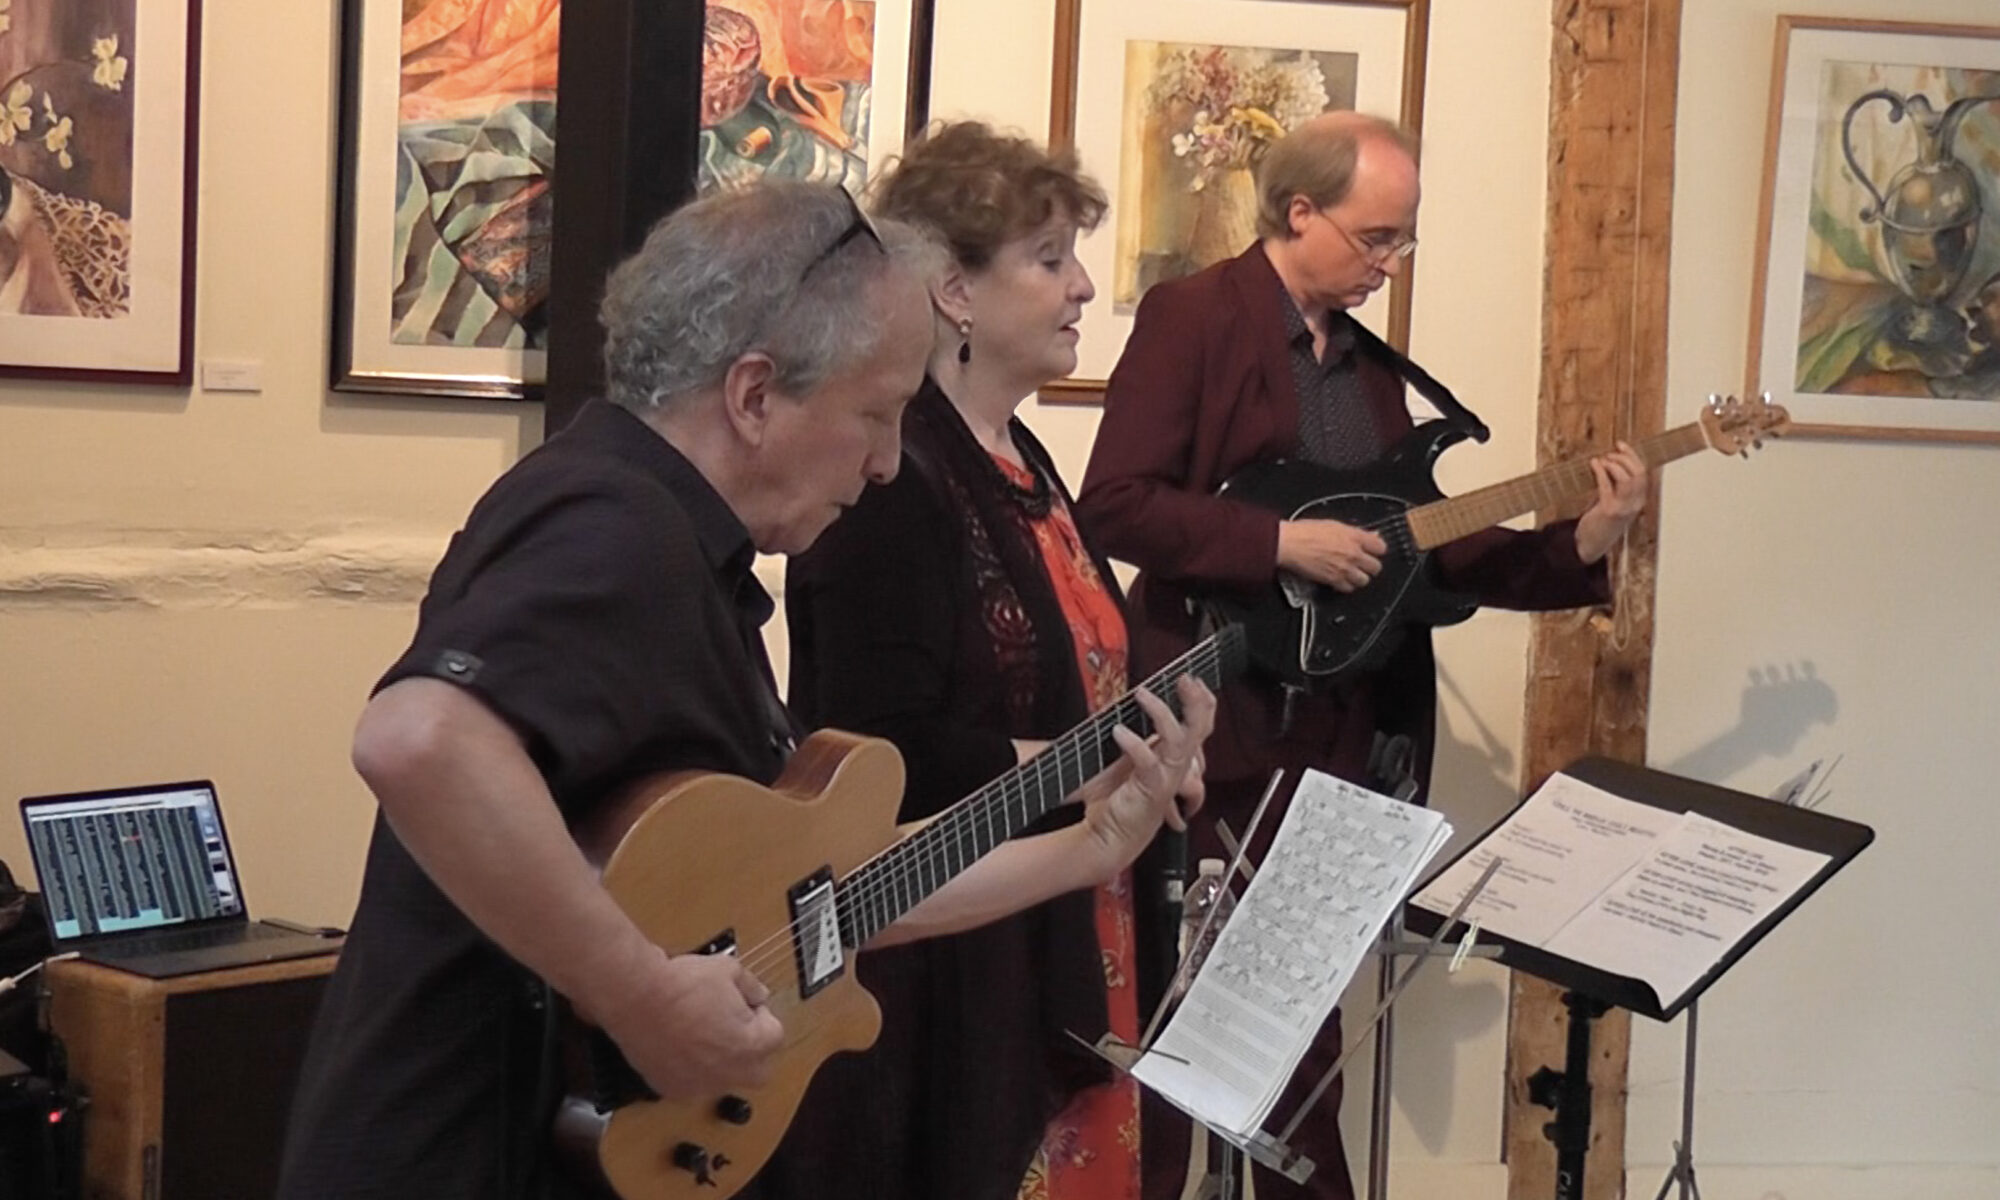 judi Silvano Zephyr band with Bruce Arnold Kenny Wessel Videos filmed by Michal Shapiro